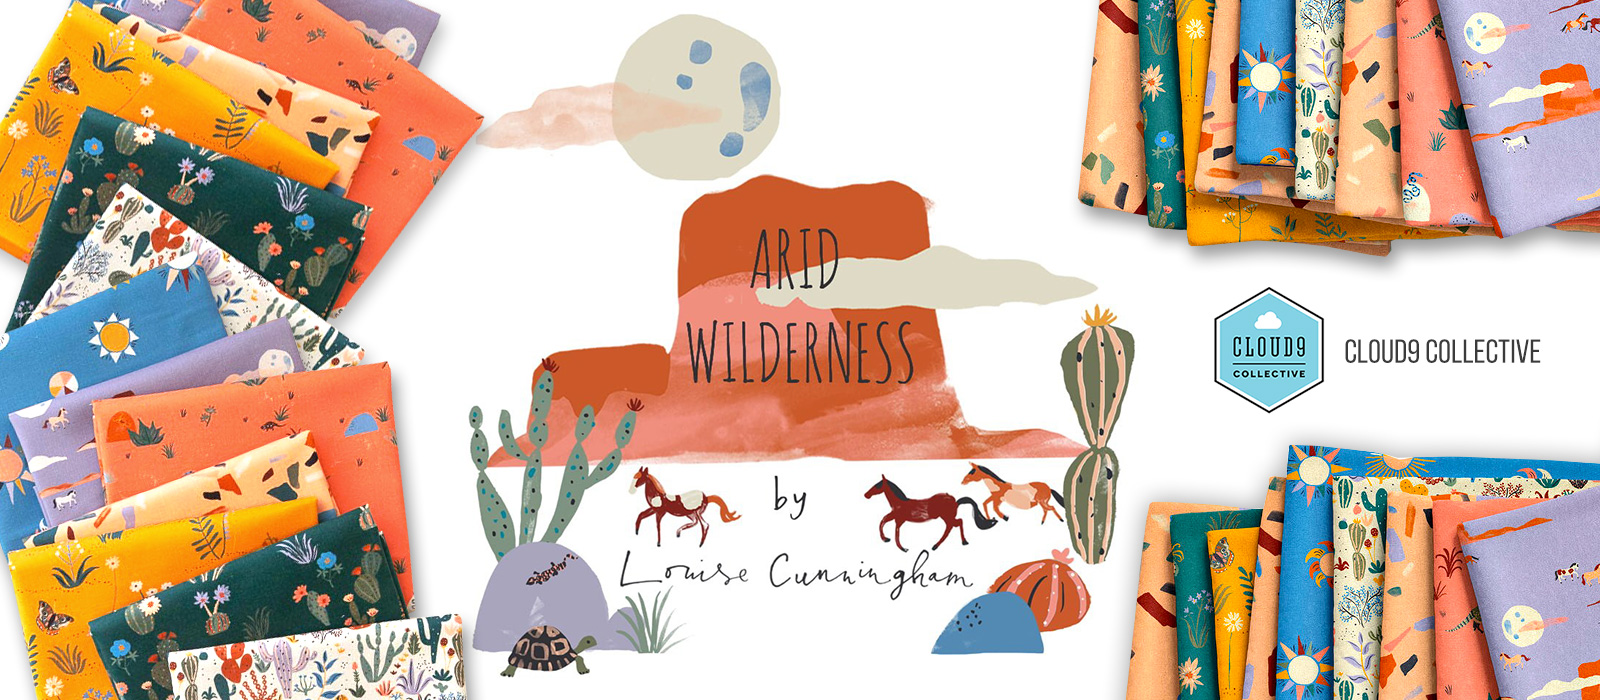 Cloud9 Fabrics Arid Wilderness Collection by Louise Cunningham